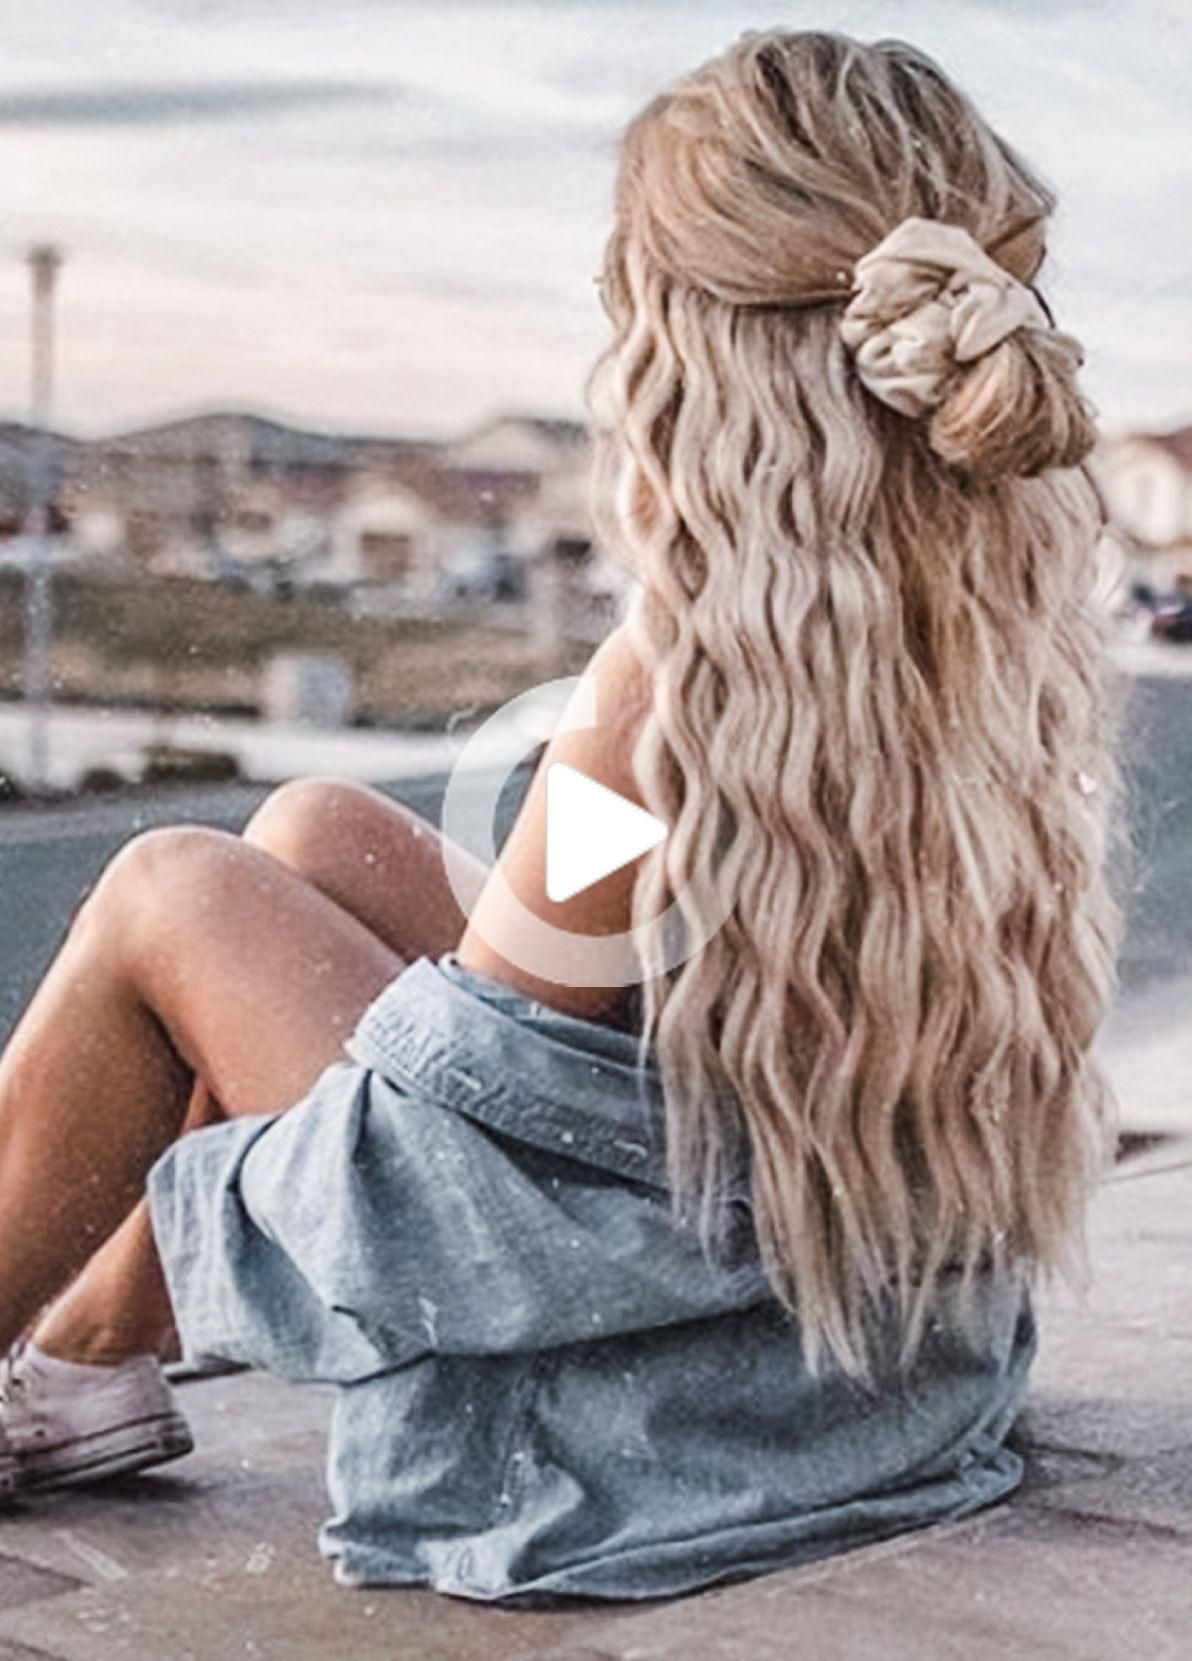 The Best Tousled Beach Hair In 2020 Wand Hairstyles Beach Tousled Hair Best Hair Wand